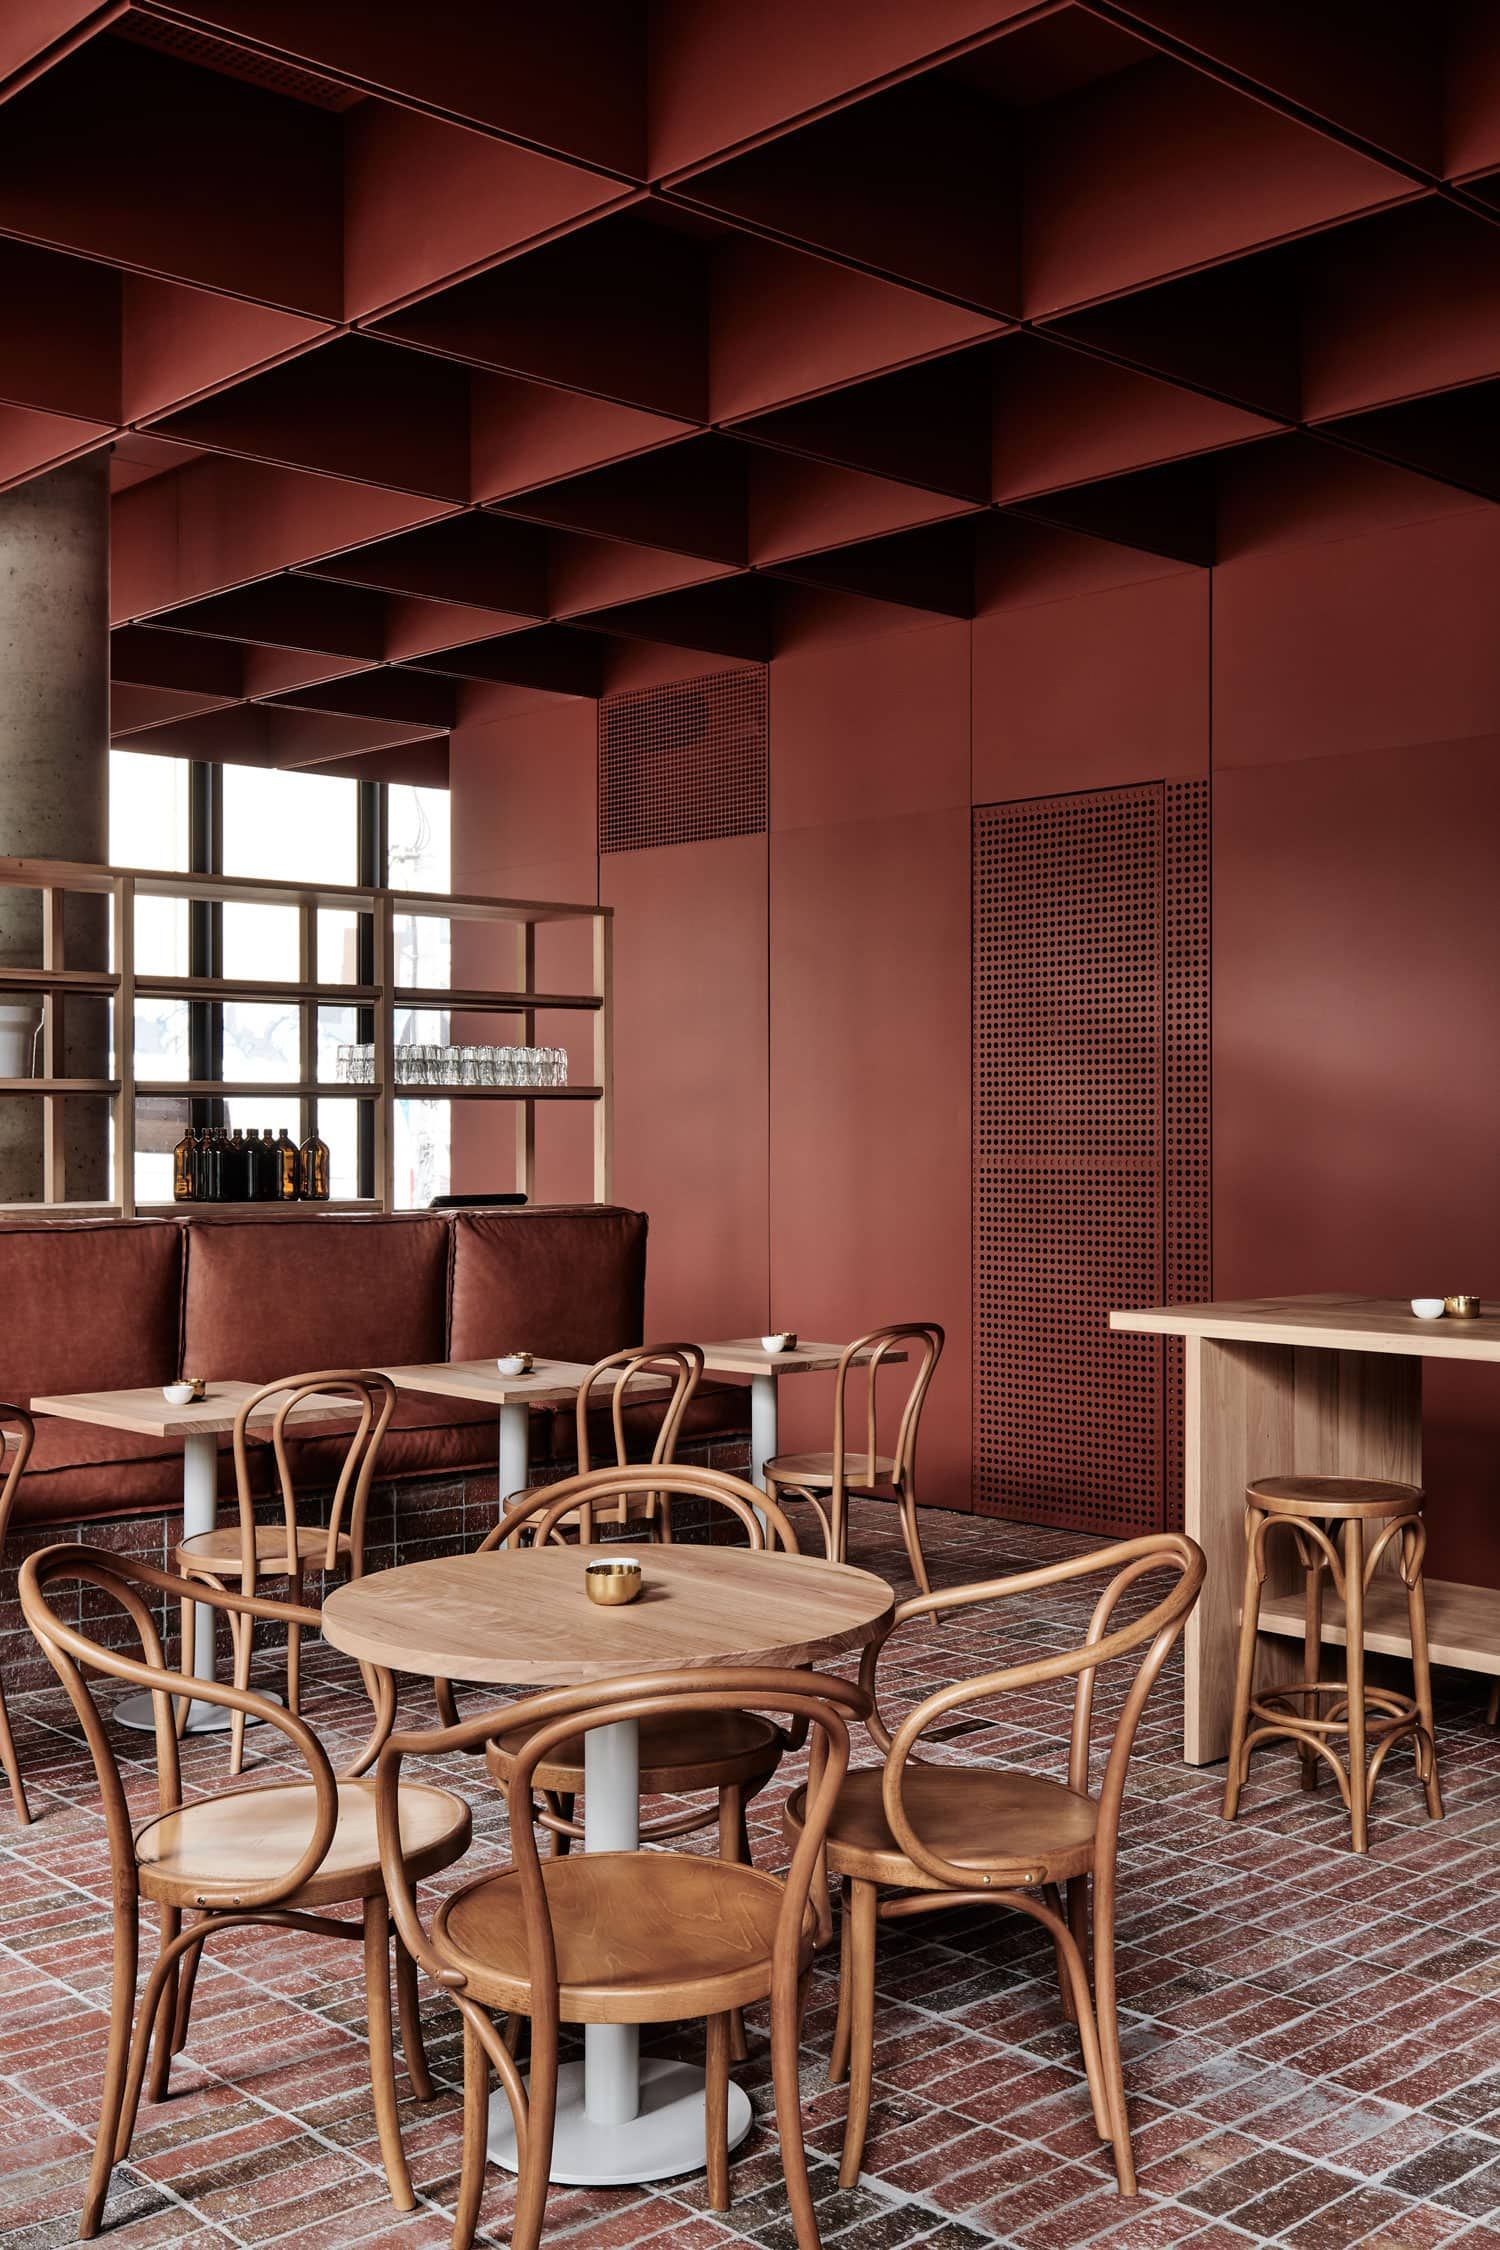 Bentwood Cafe In Fitzroy Melbourne By Ritz Ghougassian Yellowtrace Australian Interior Design Restaurant Interior Cafe Design